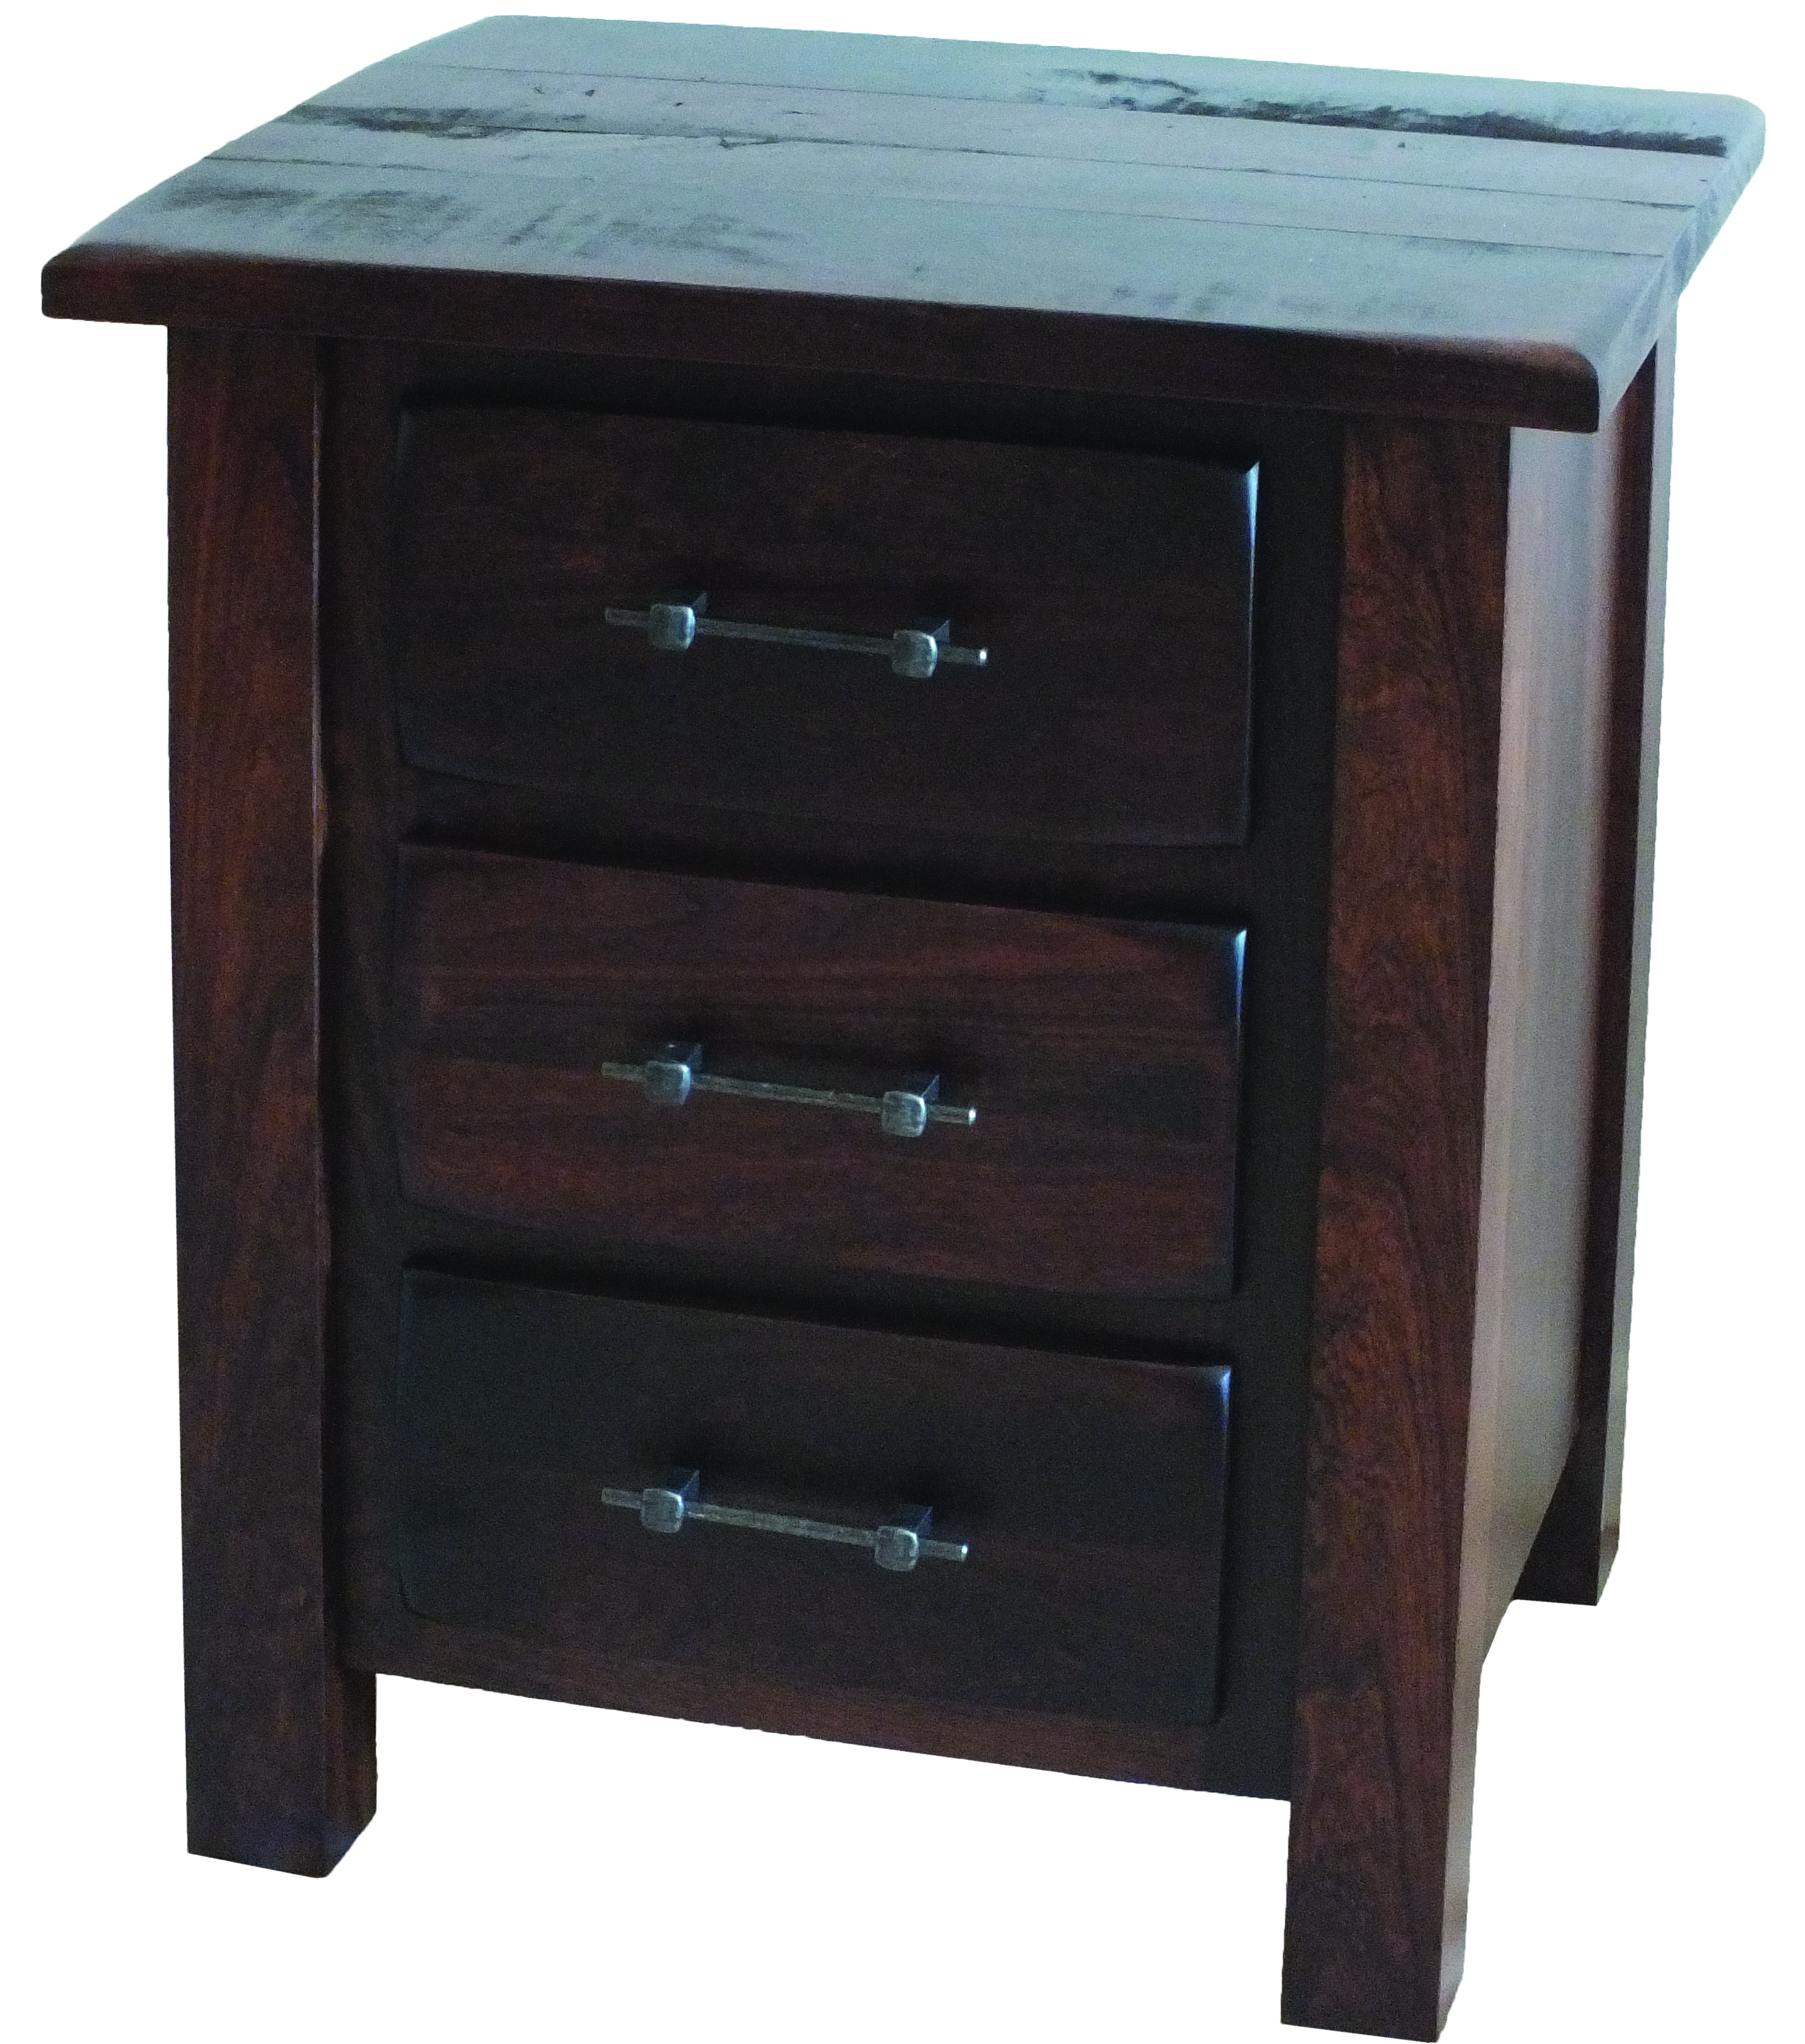 Barn Floor Night Stand